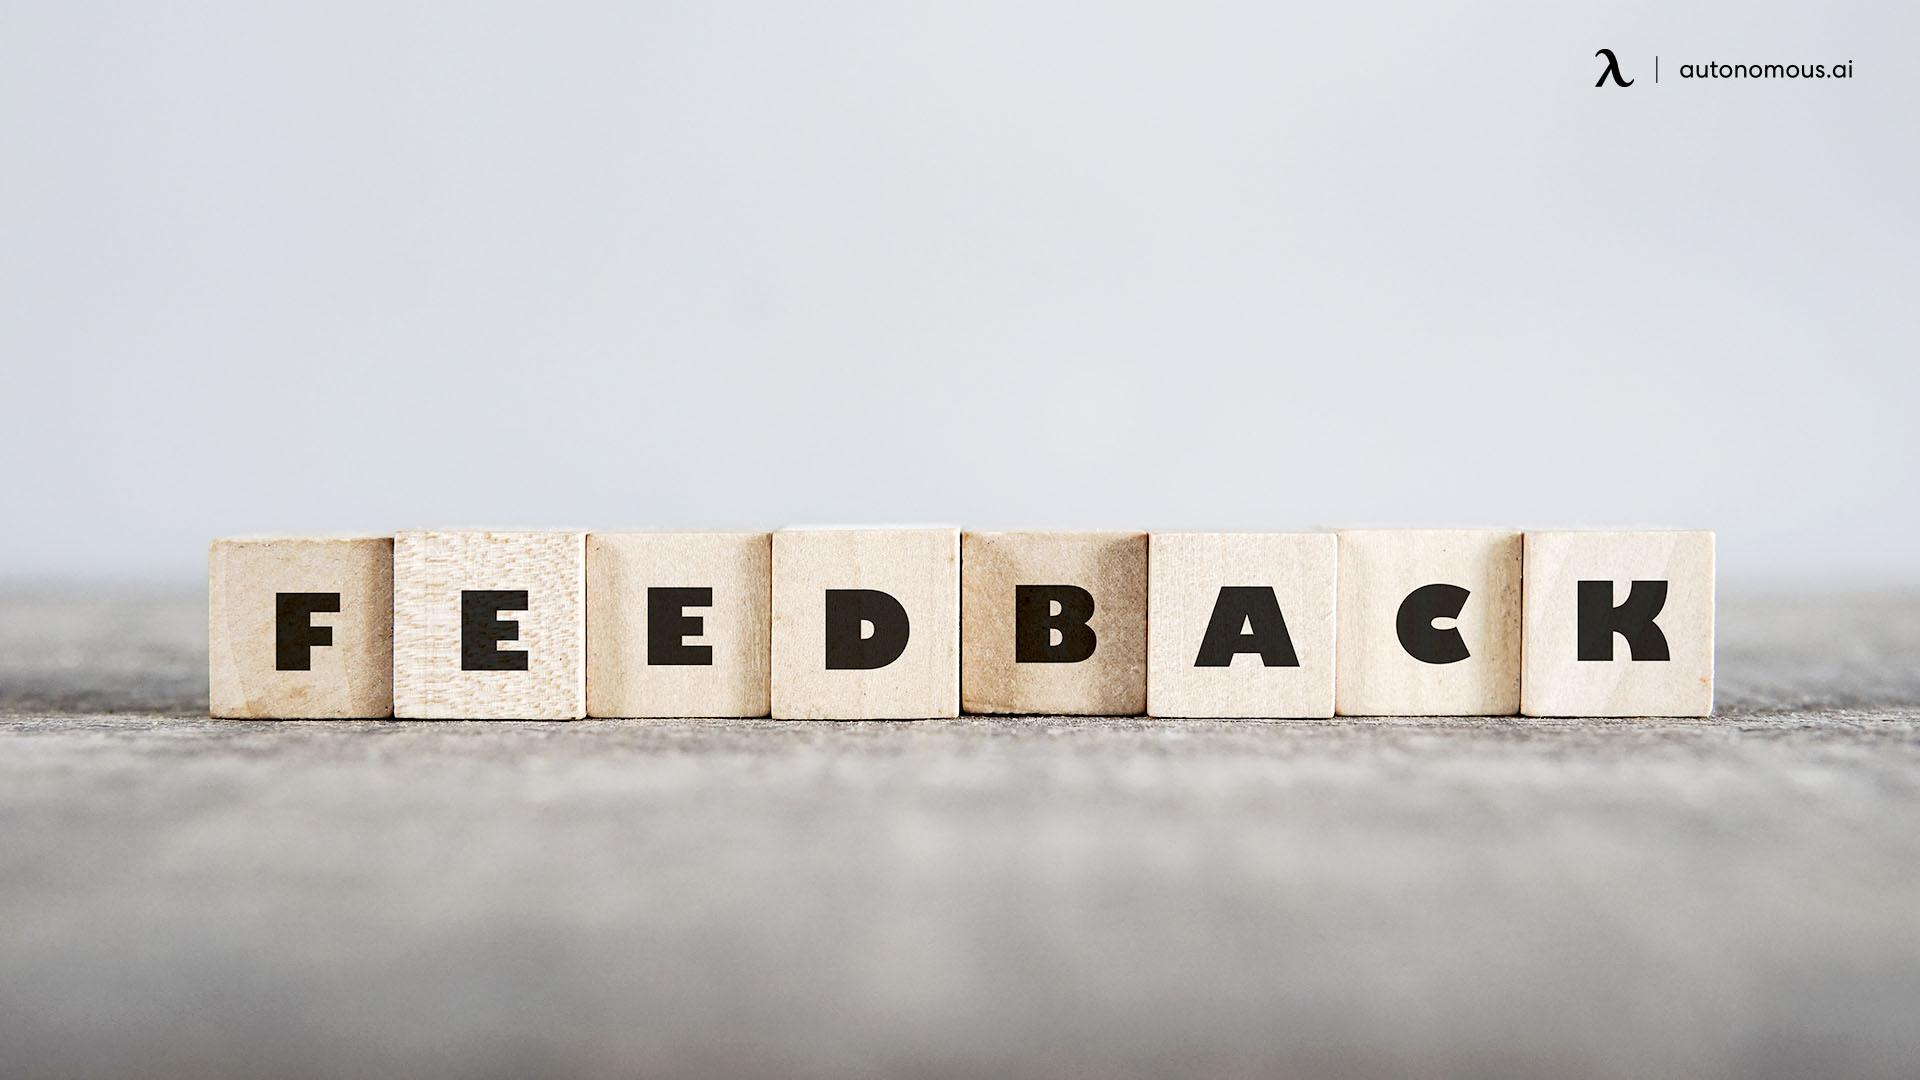 Why Feedback Is Important